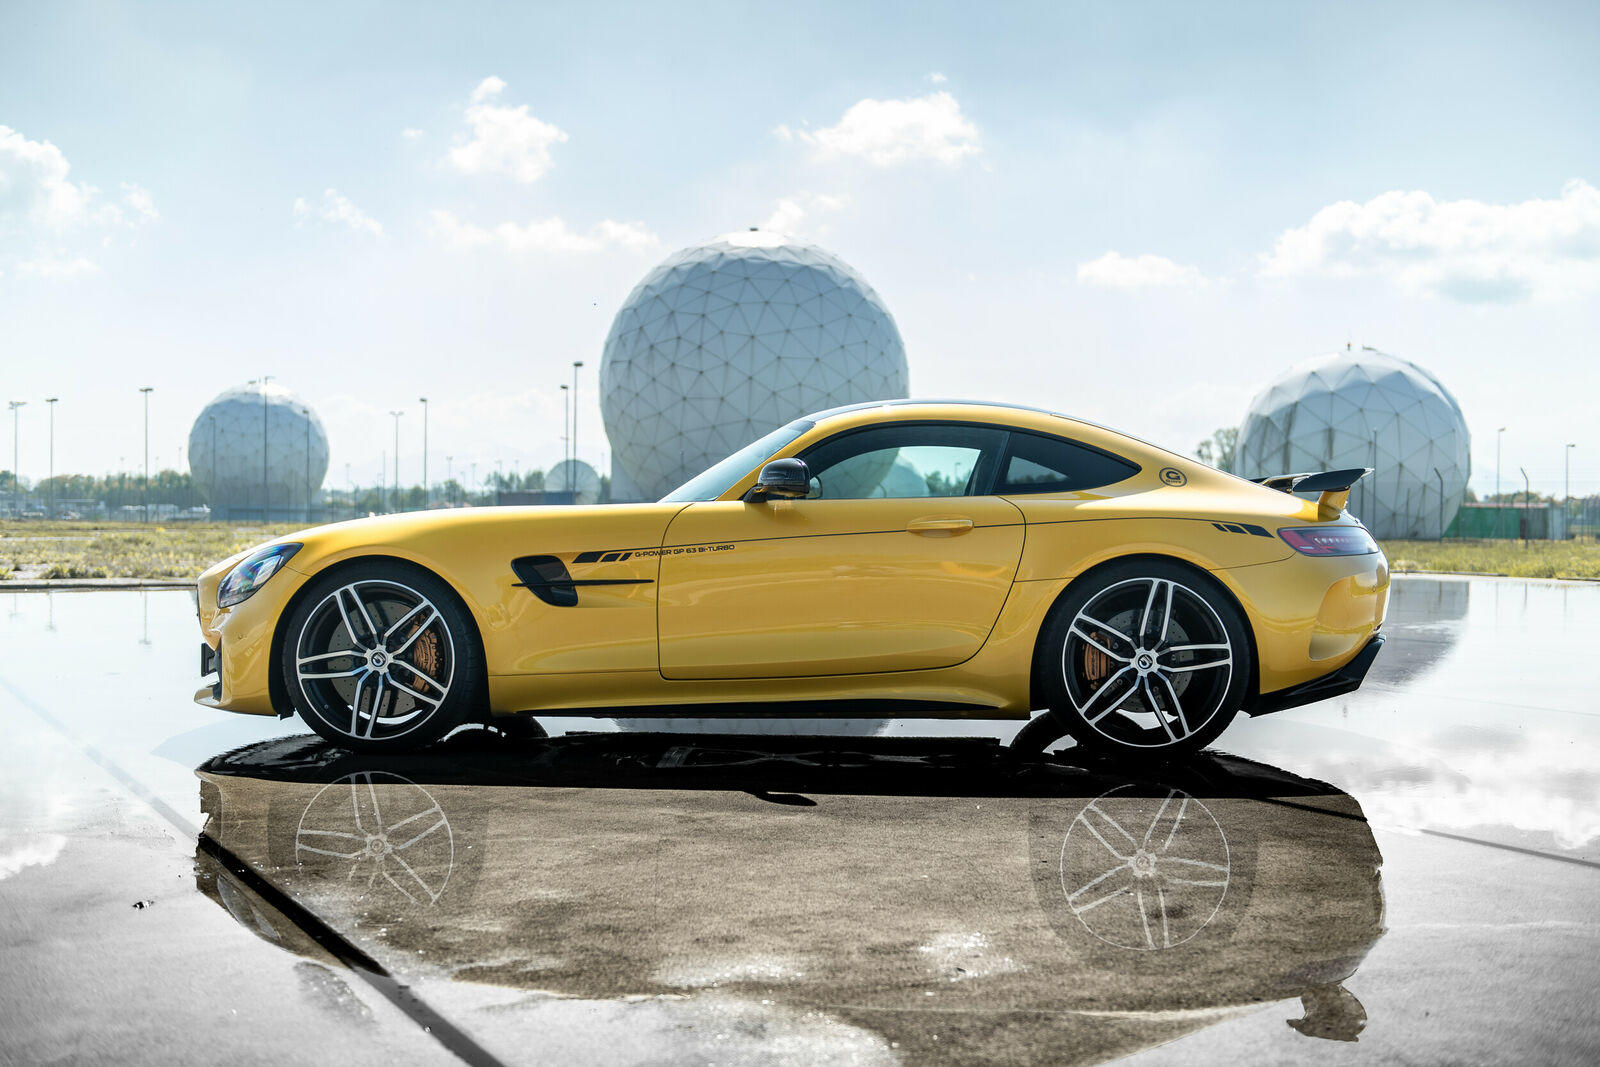 Mercedes-AMG GT R de la G-Power - Mercedes-AMG GT R de la G-Power